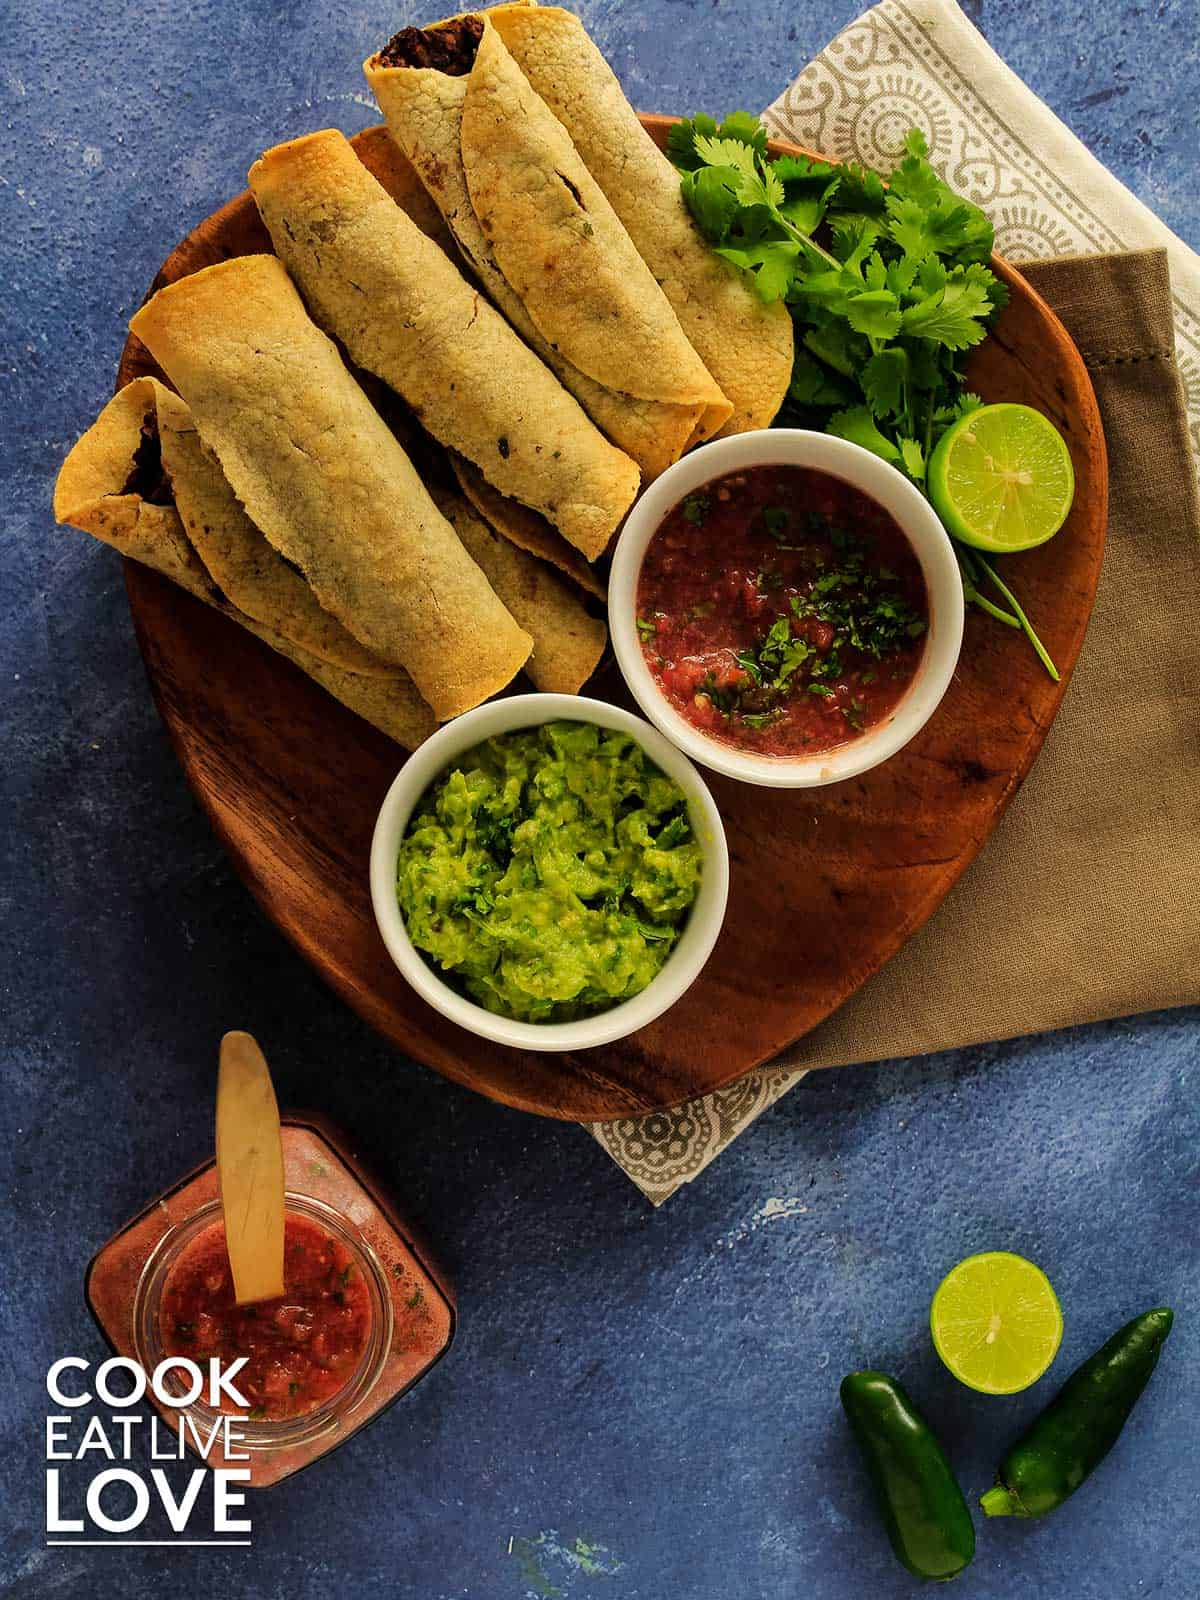 Taquitos on a plate with salsa and guacamole